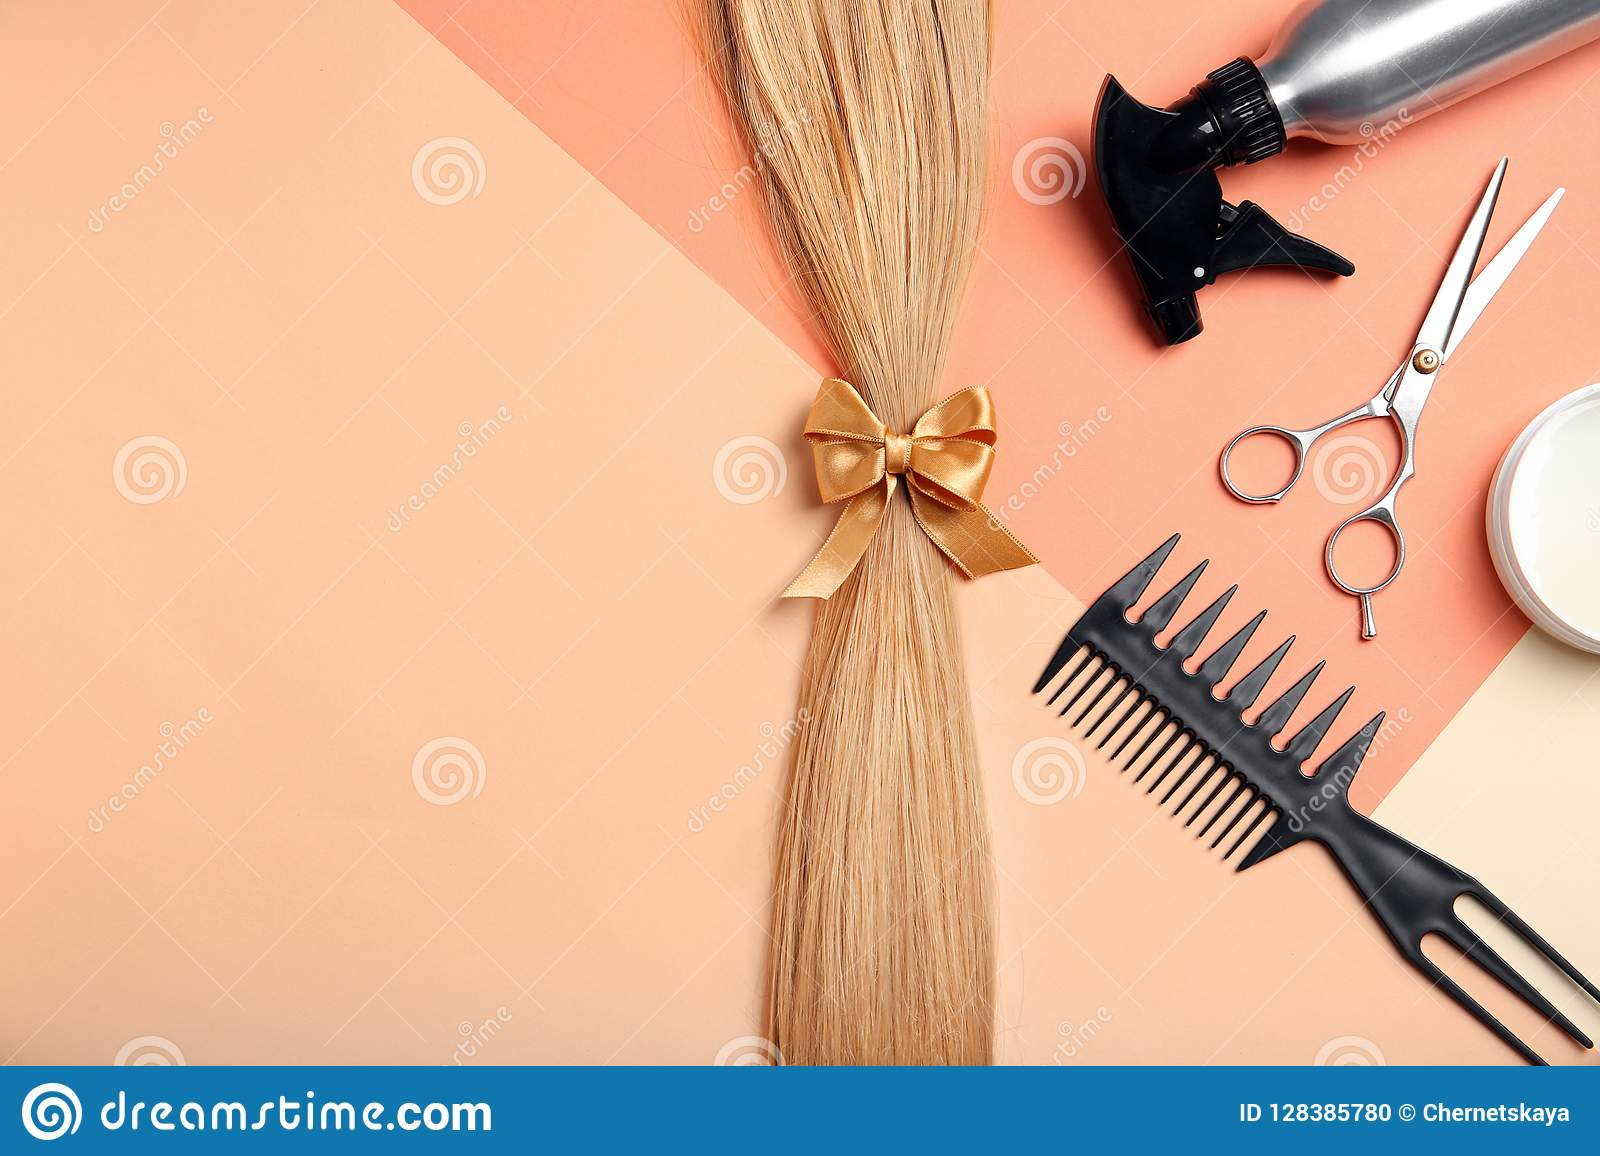 13,361 hair salon tools photos - free & royalty-free stock photos from  dreamstime  dreamstime.com